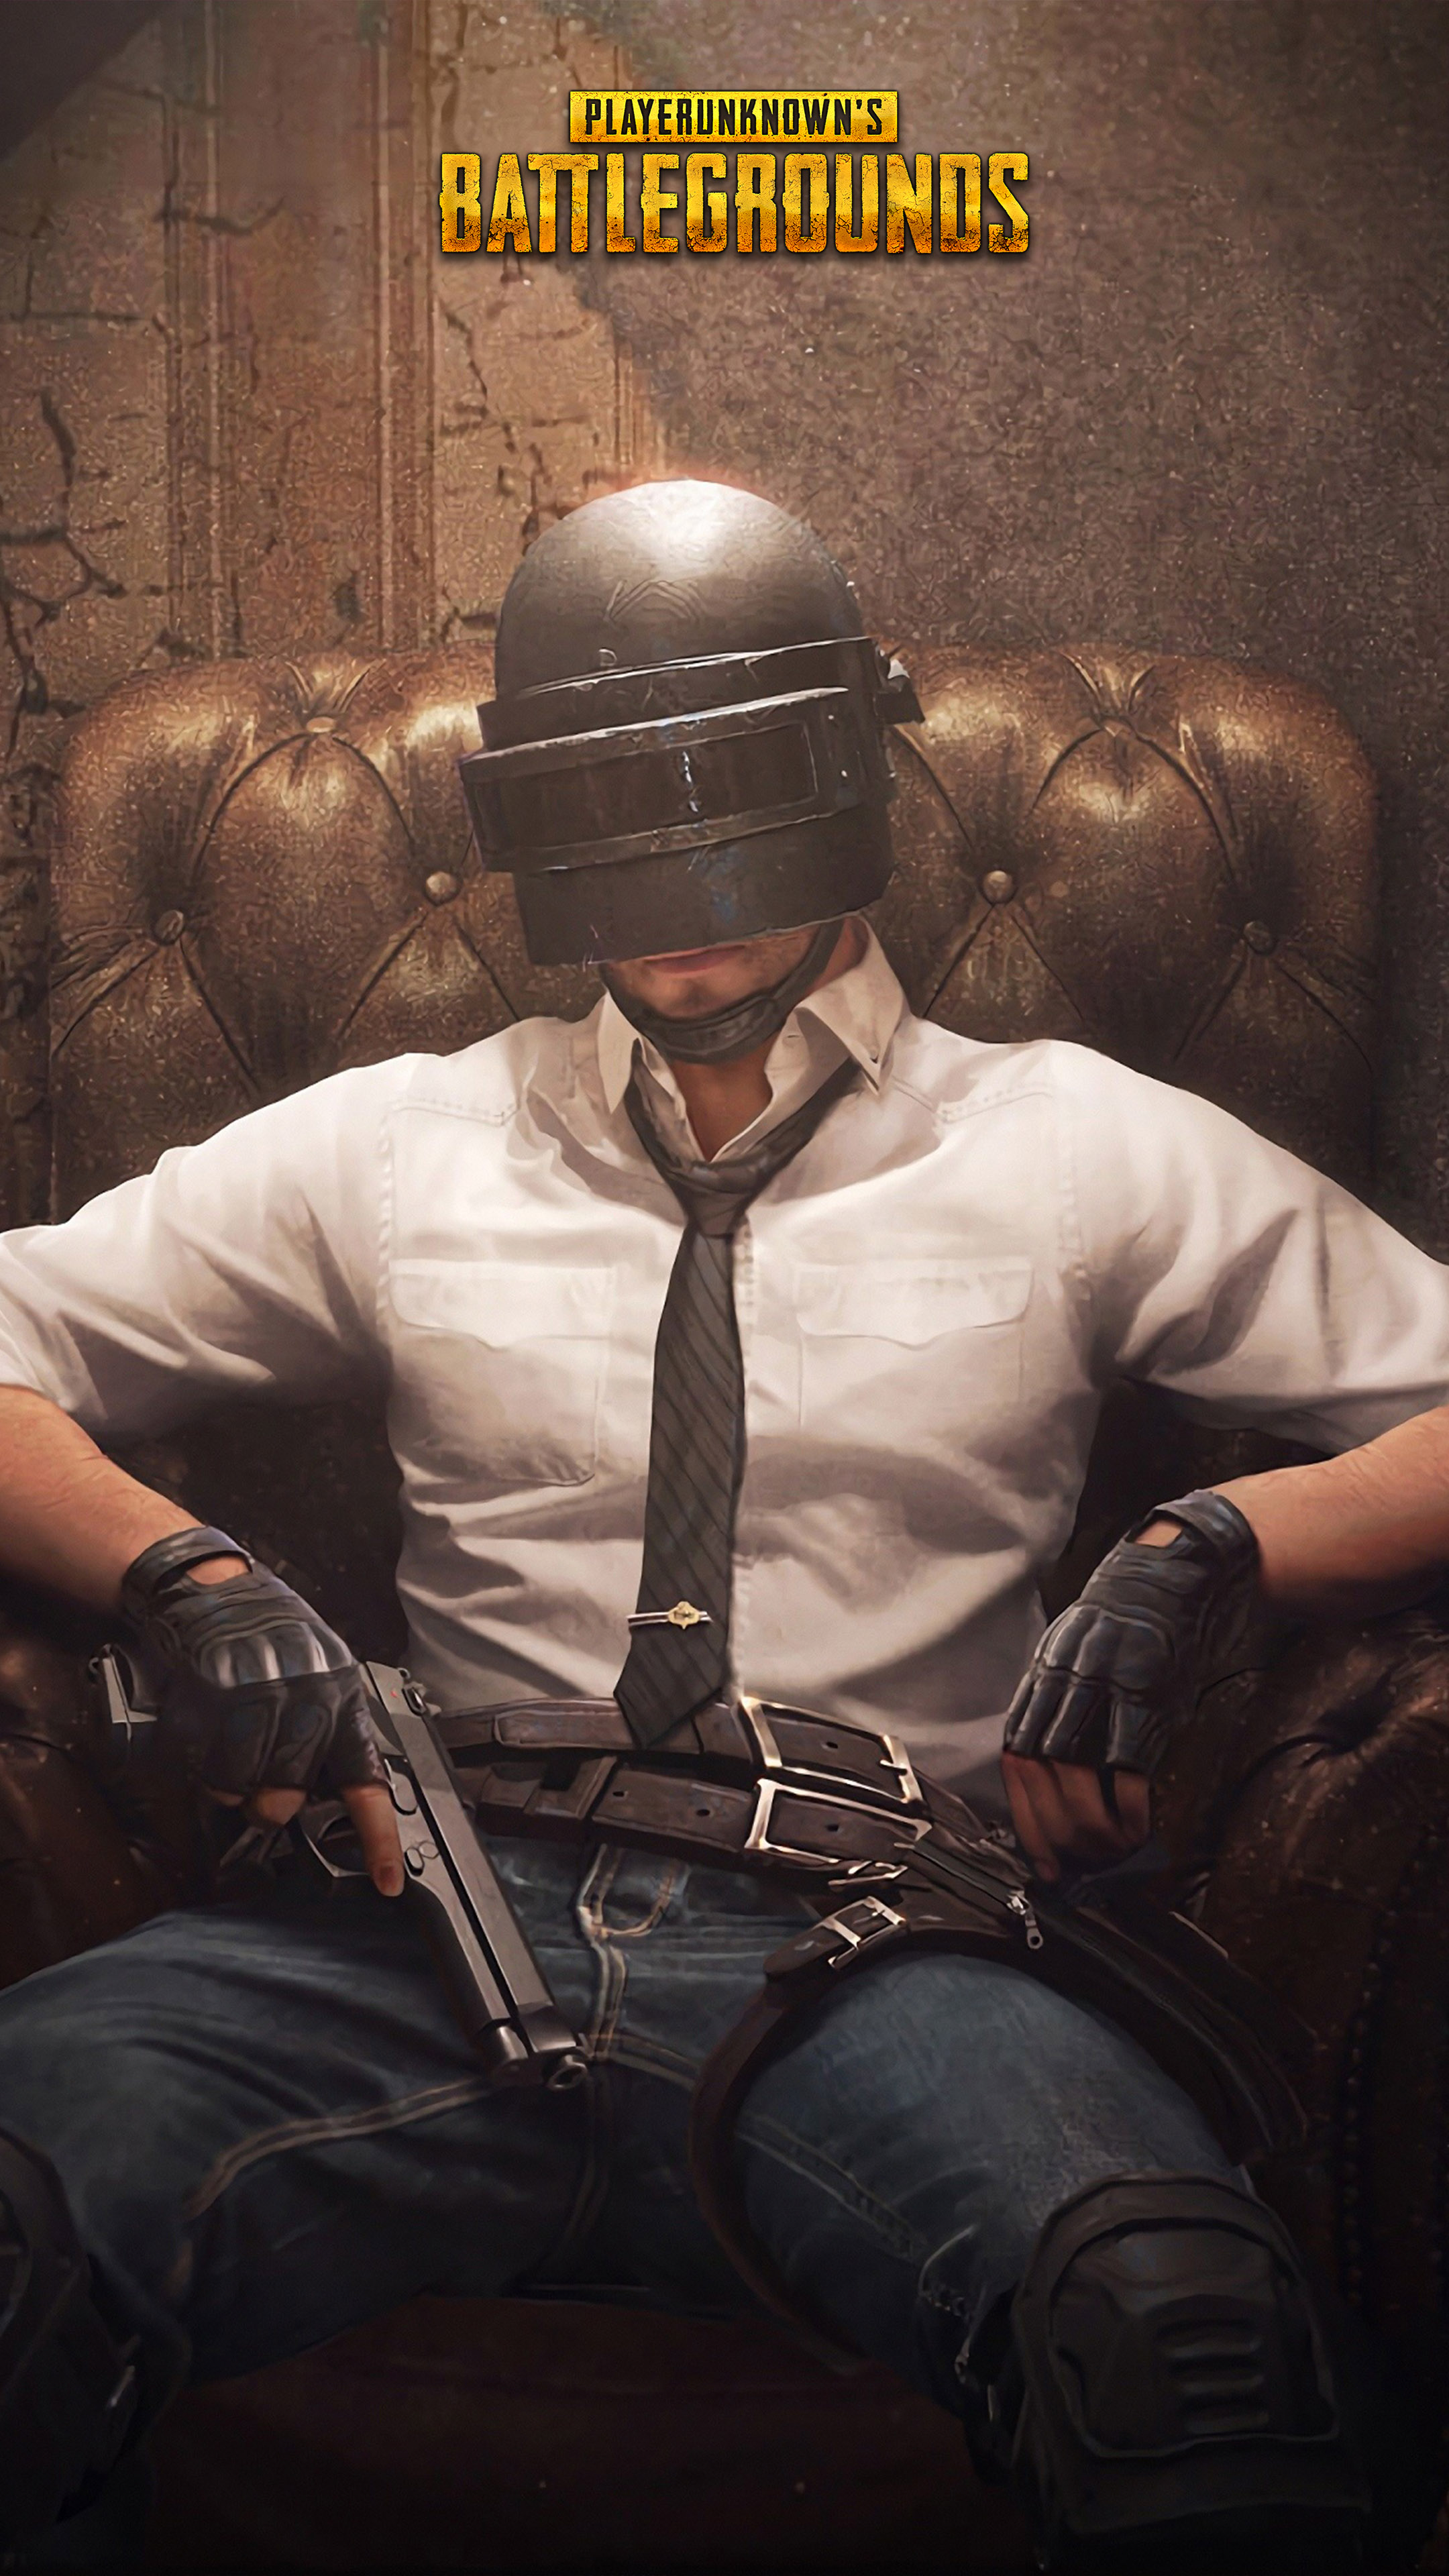 Download Pubg Helmet Guy Playerunknown S Battlegrounds Free Pure 4k